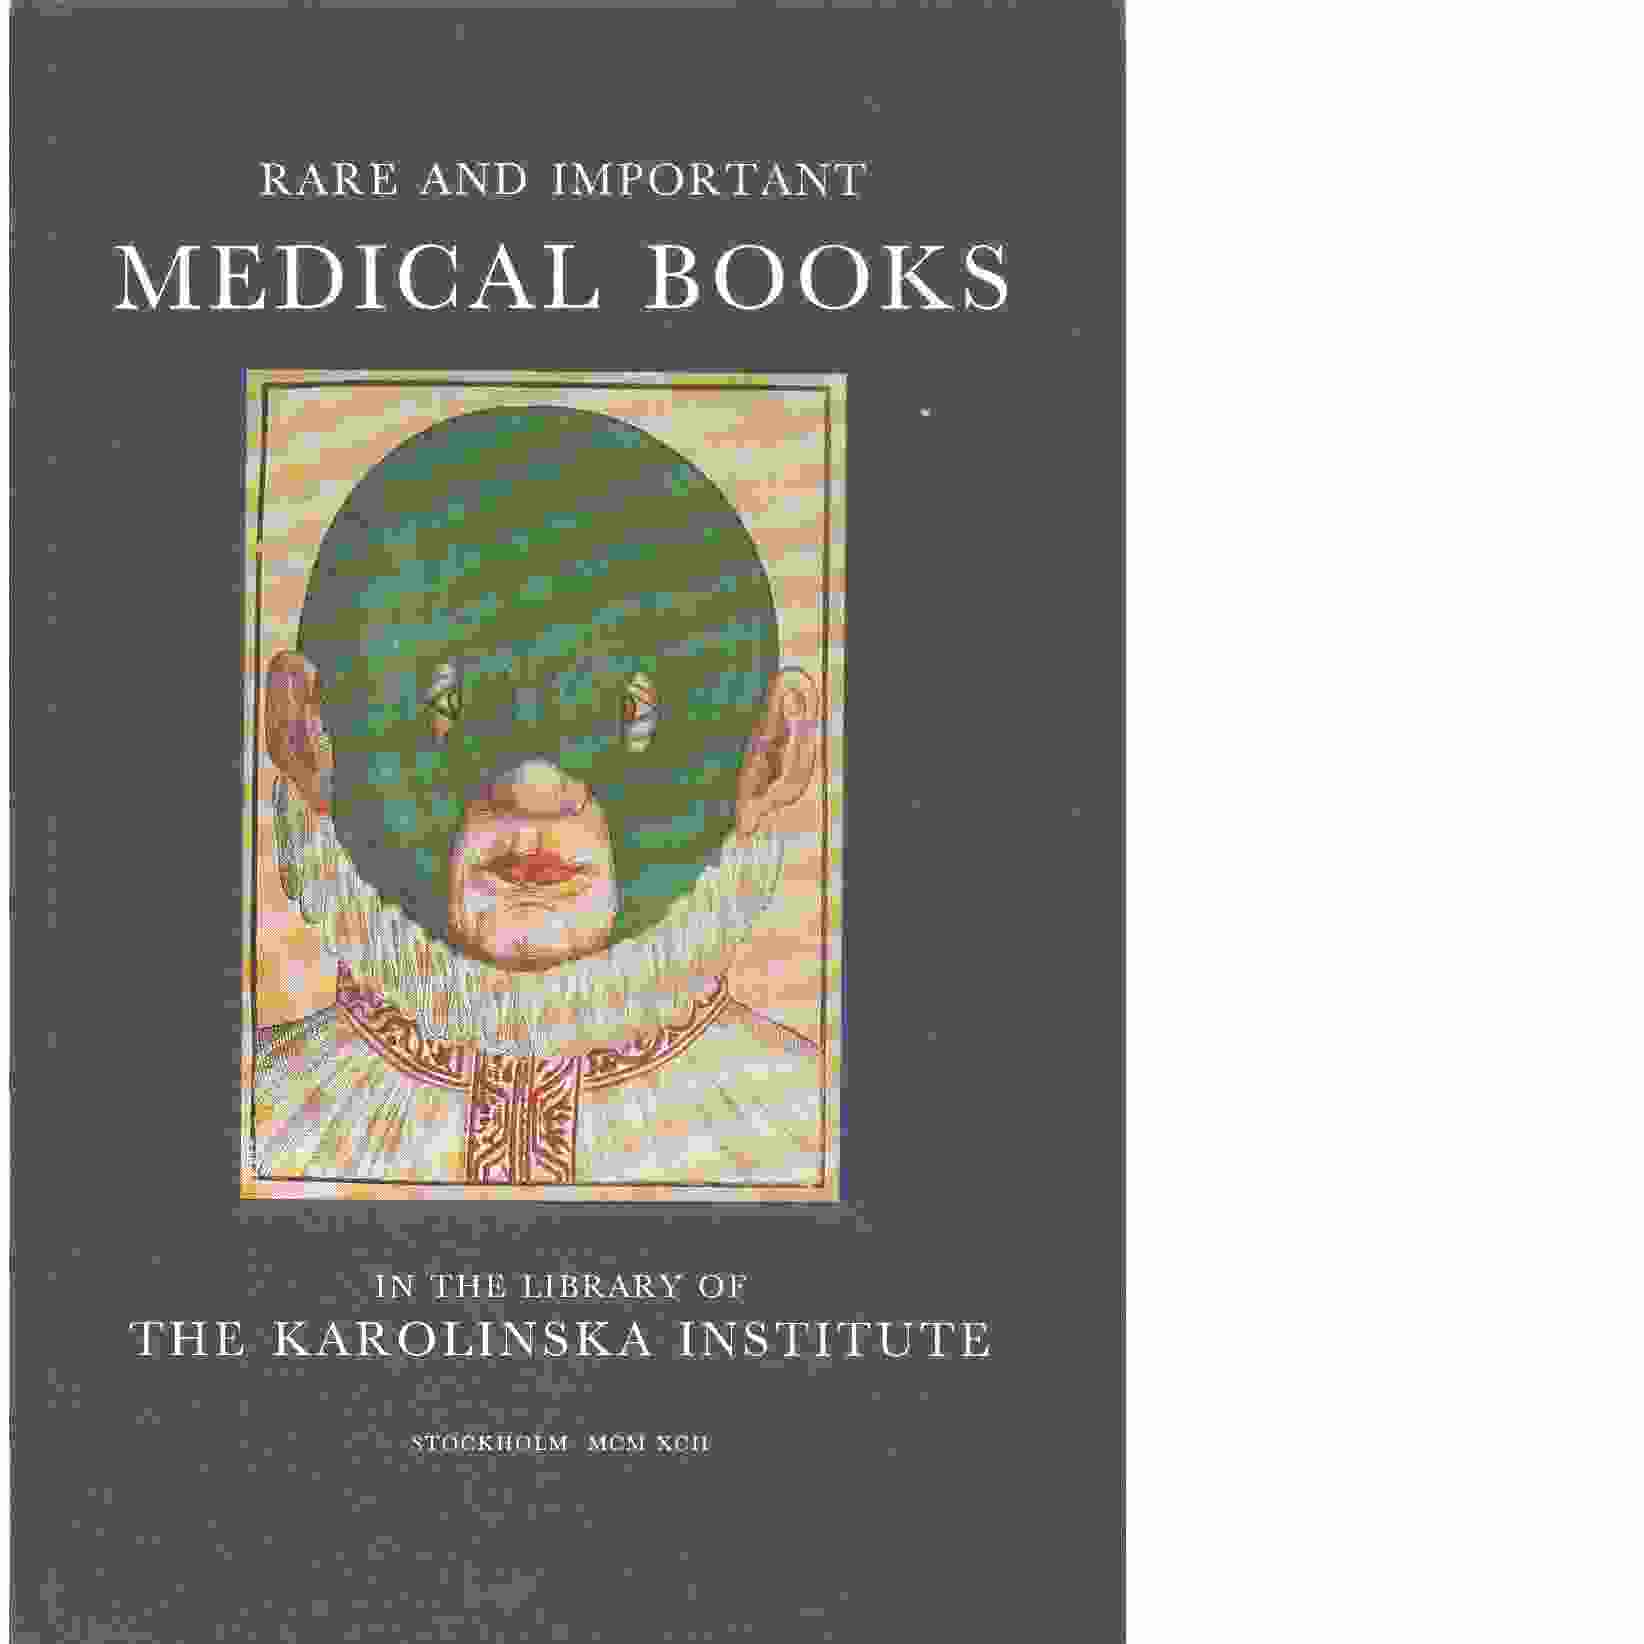 Rare and important medical books in the Library of the Karolinska Institute  - Hagelin, Ove